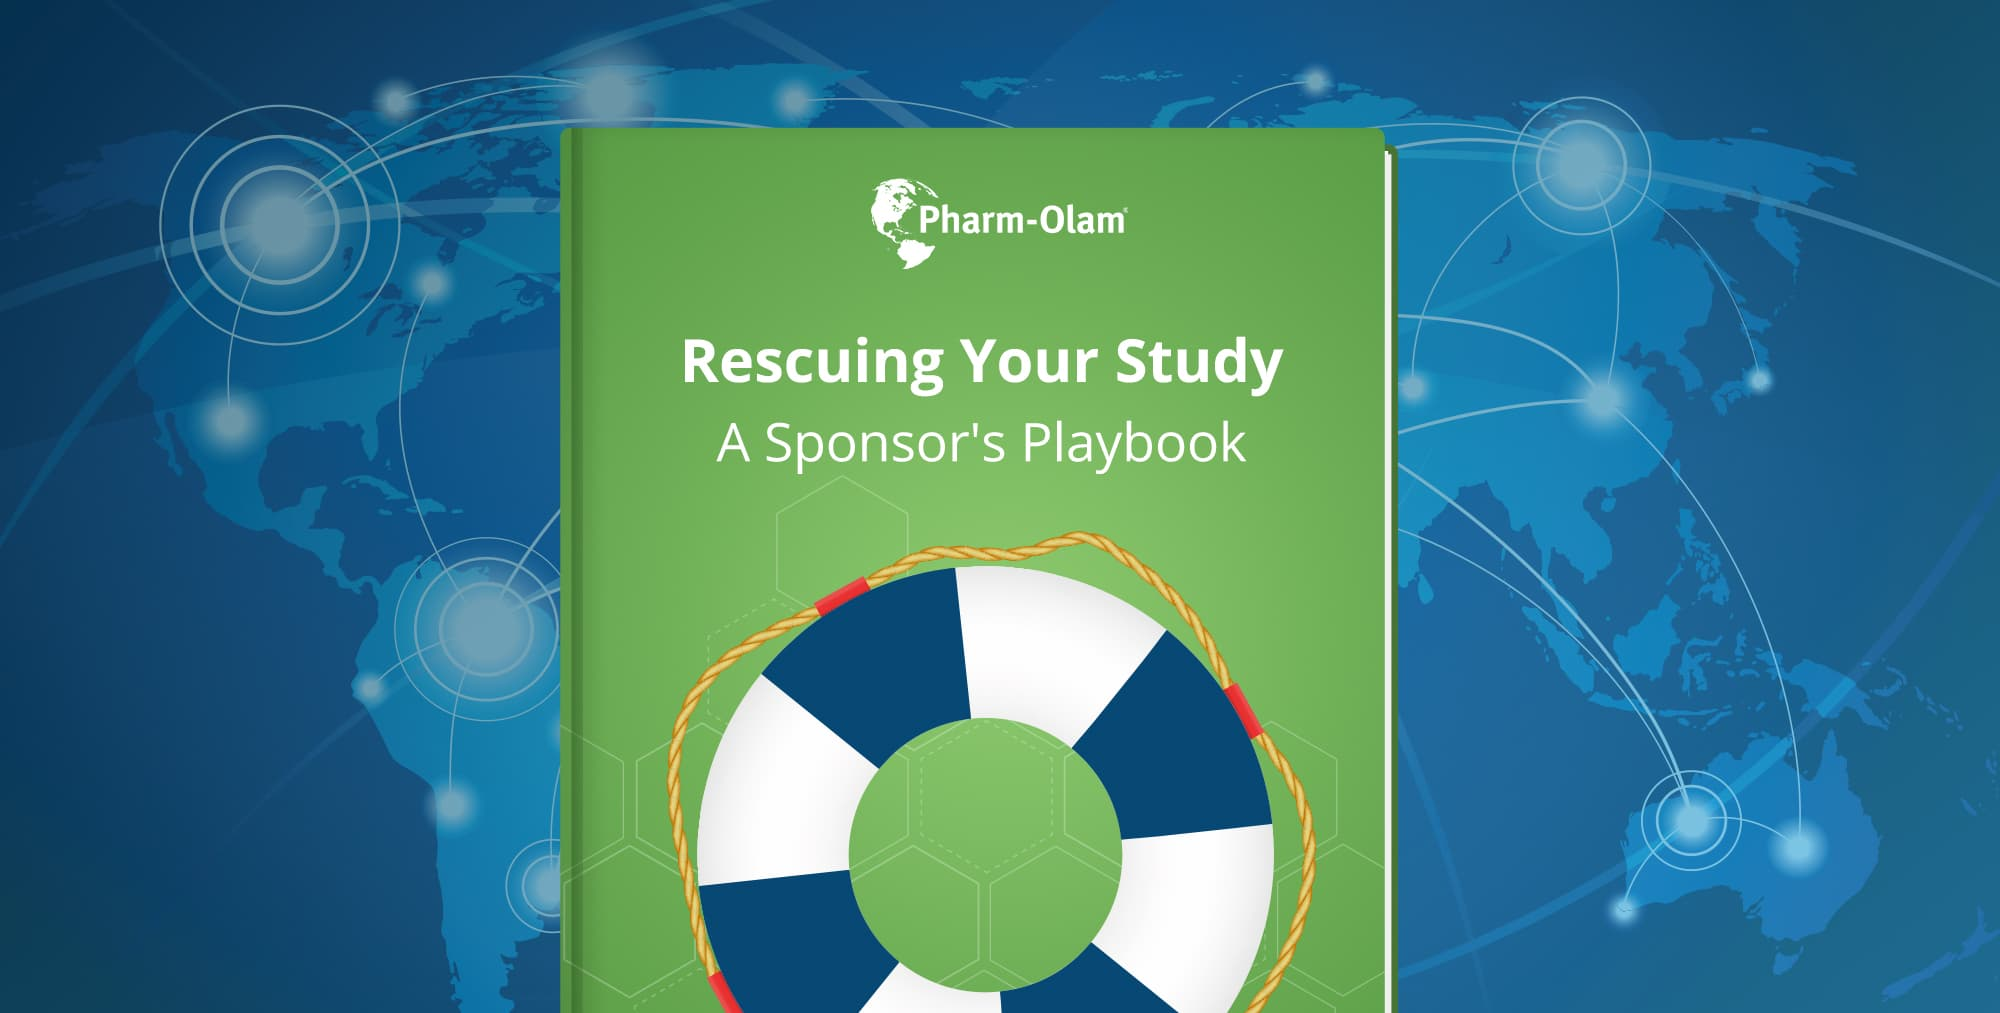 Upcoming Pharm-Olam Webinar Helps Sponsors Manage Rescue Study Transitions